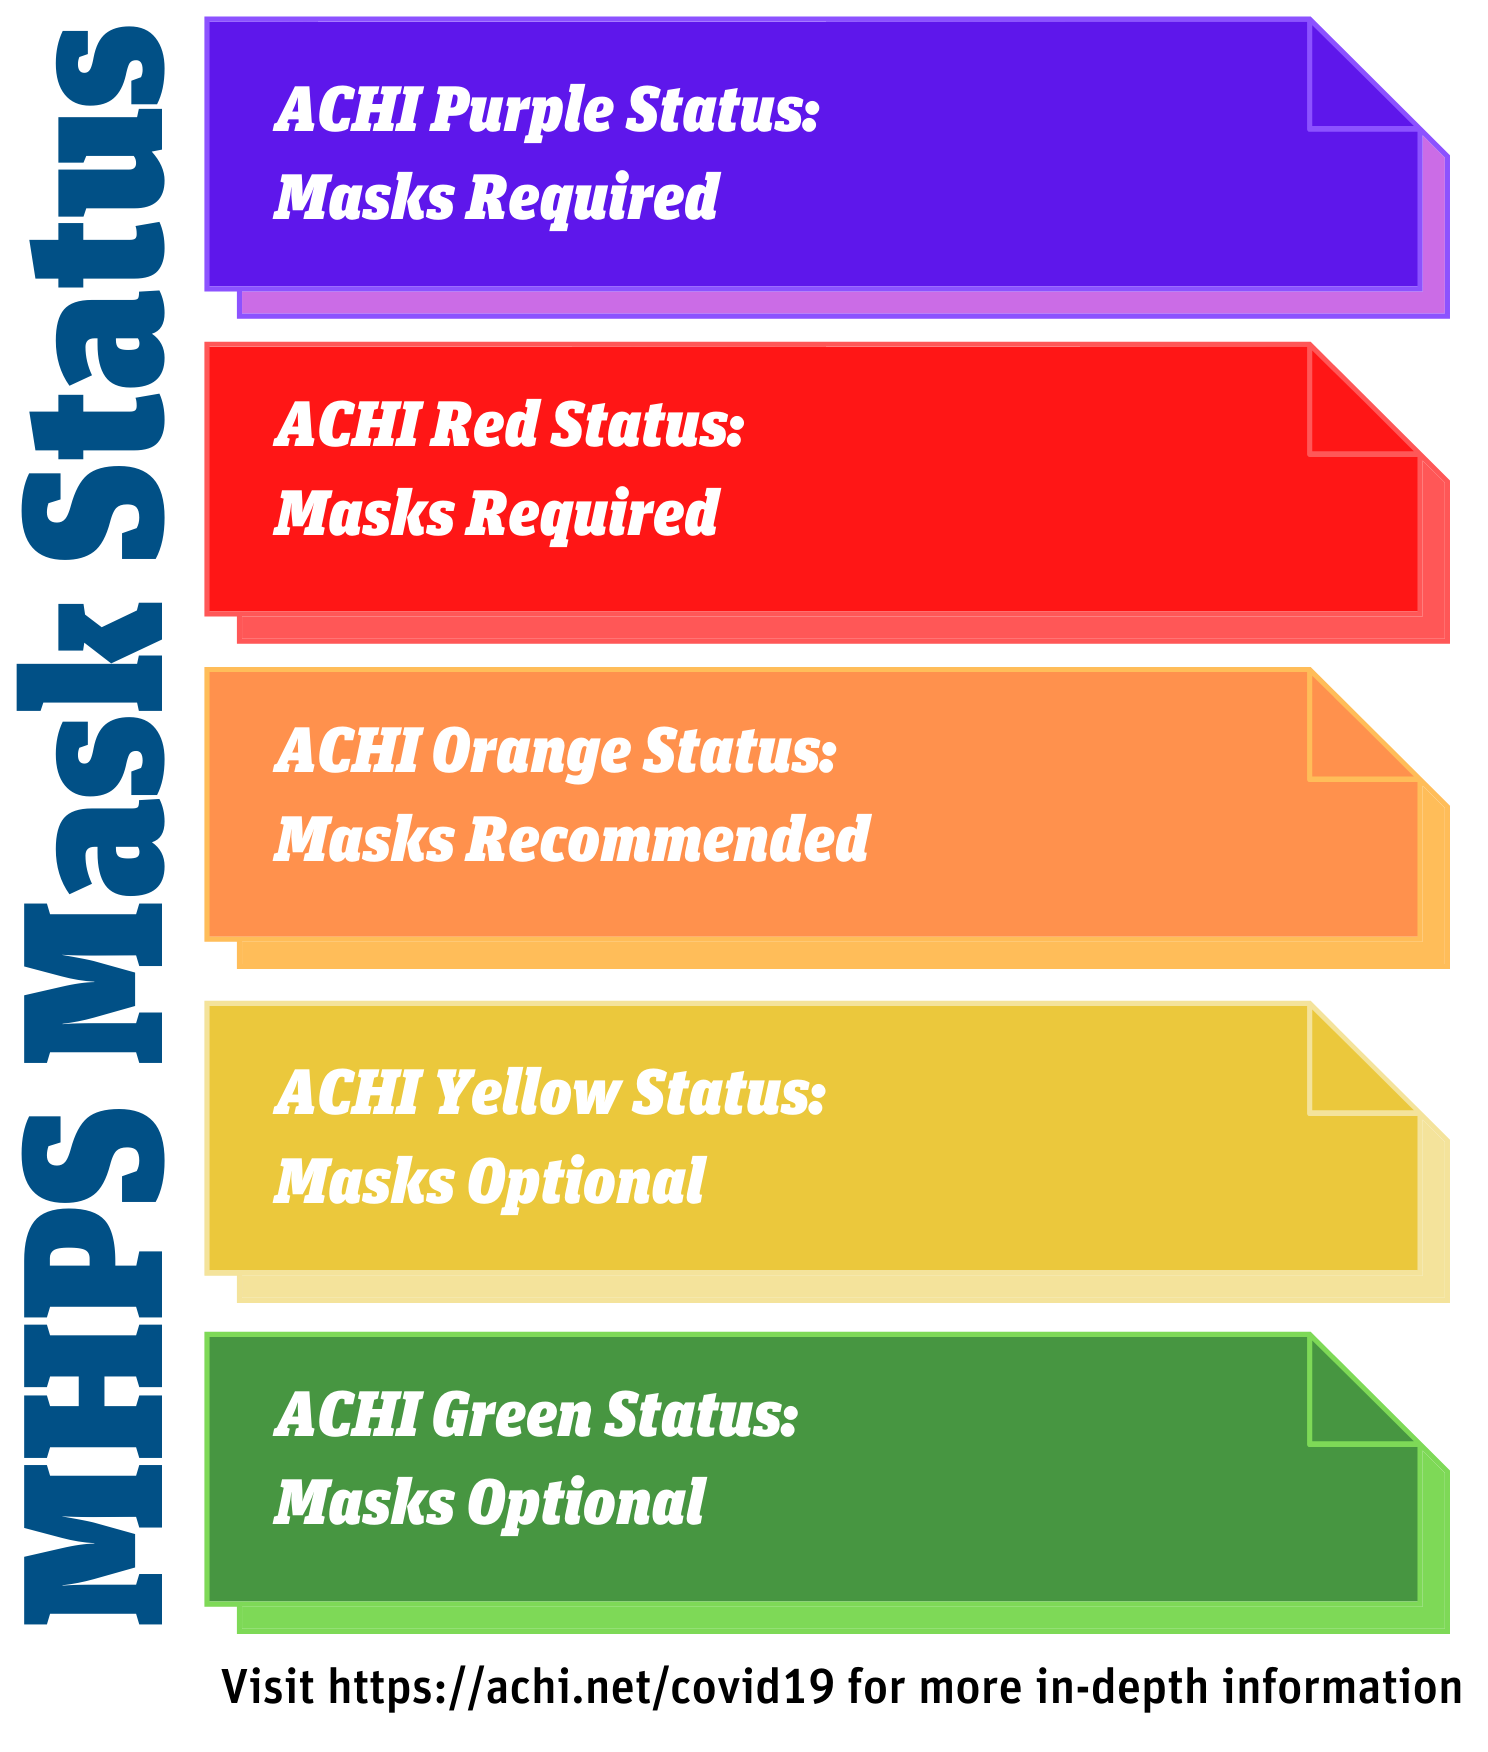 a graphic explaining how the district will be required to wear masks when we are in purple or red status on achi.org/covid19